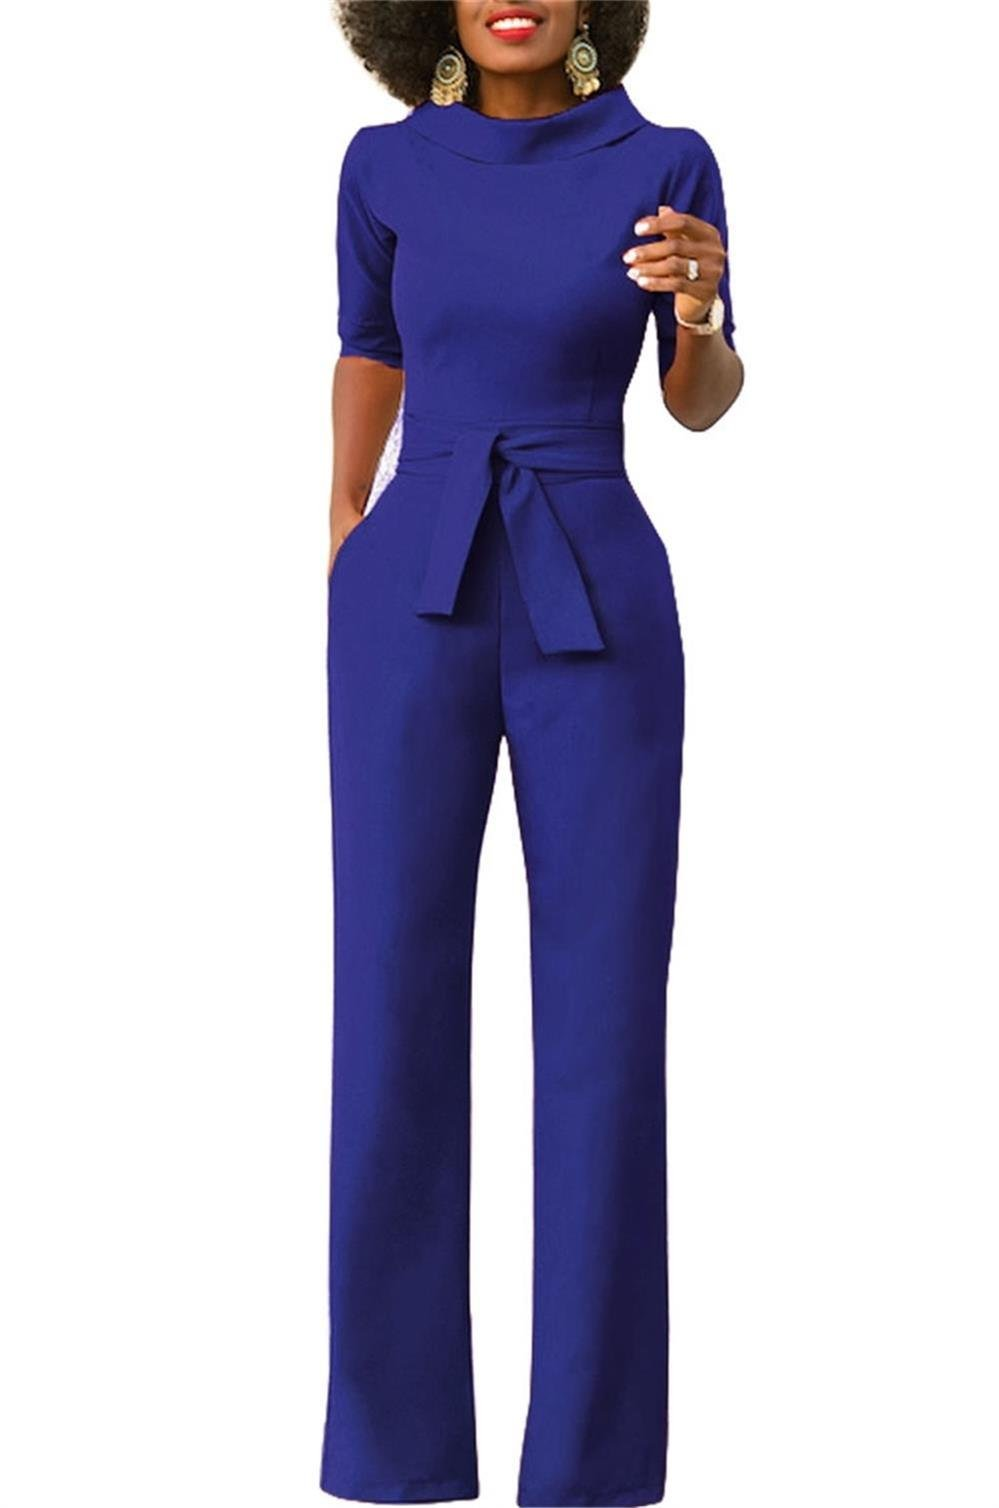 KISSMODA Women's Elegant Lapel Wide Leg Boot Cut Jumpsuit with Belt Blue XX-Large